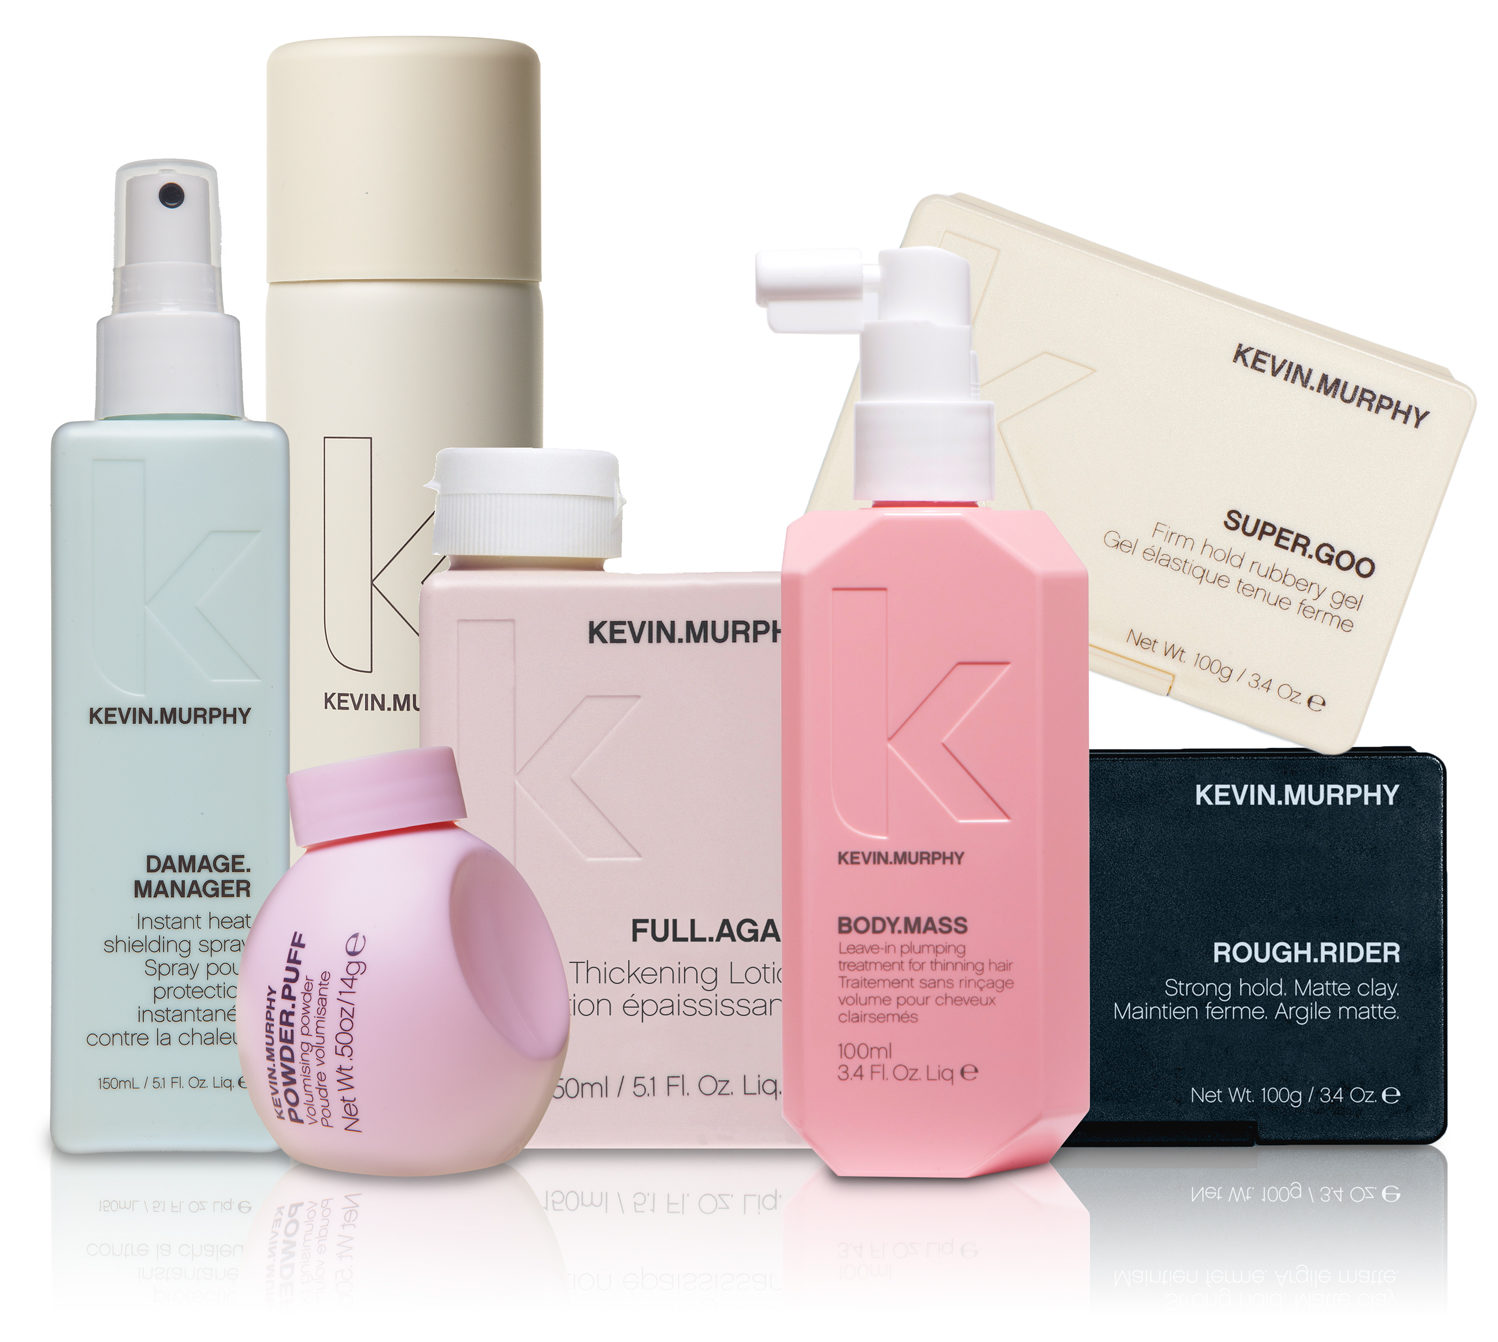 Kevin Murphy S Are A Range Of Salon Only Professional Hair Care That Provide Performance Strength And Longevity To Support Today Ever